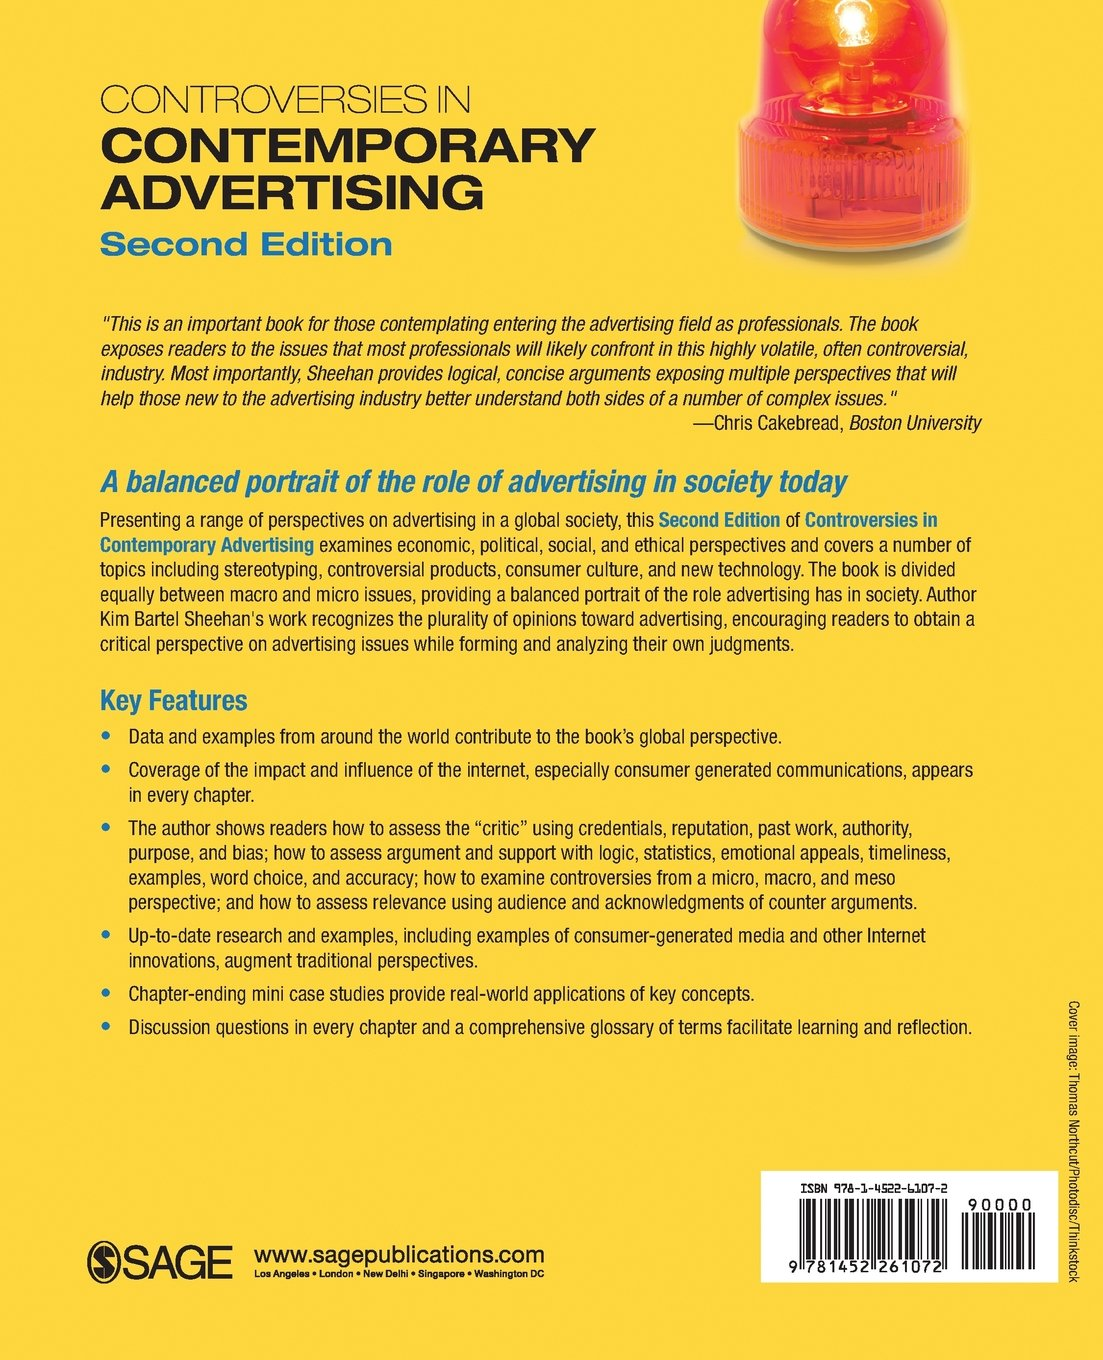 Controversies in Contemporary Advertising by Sheehan Kim